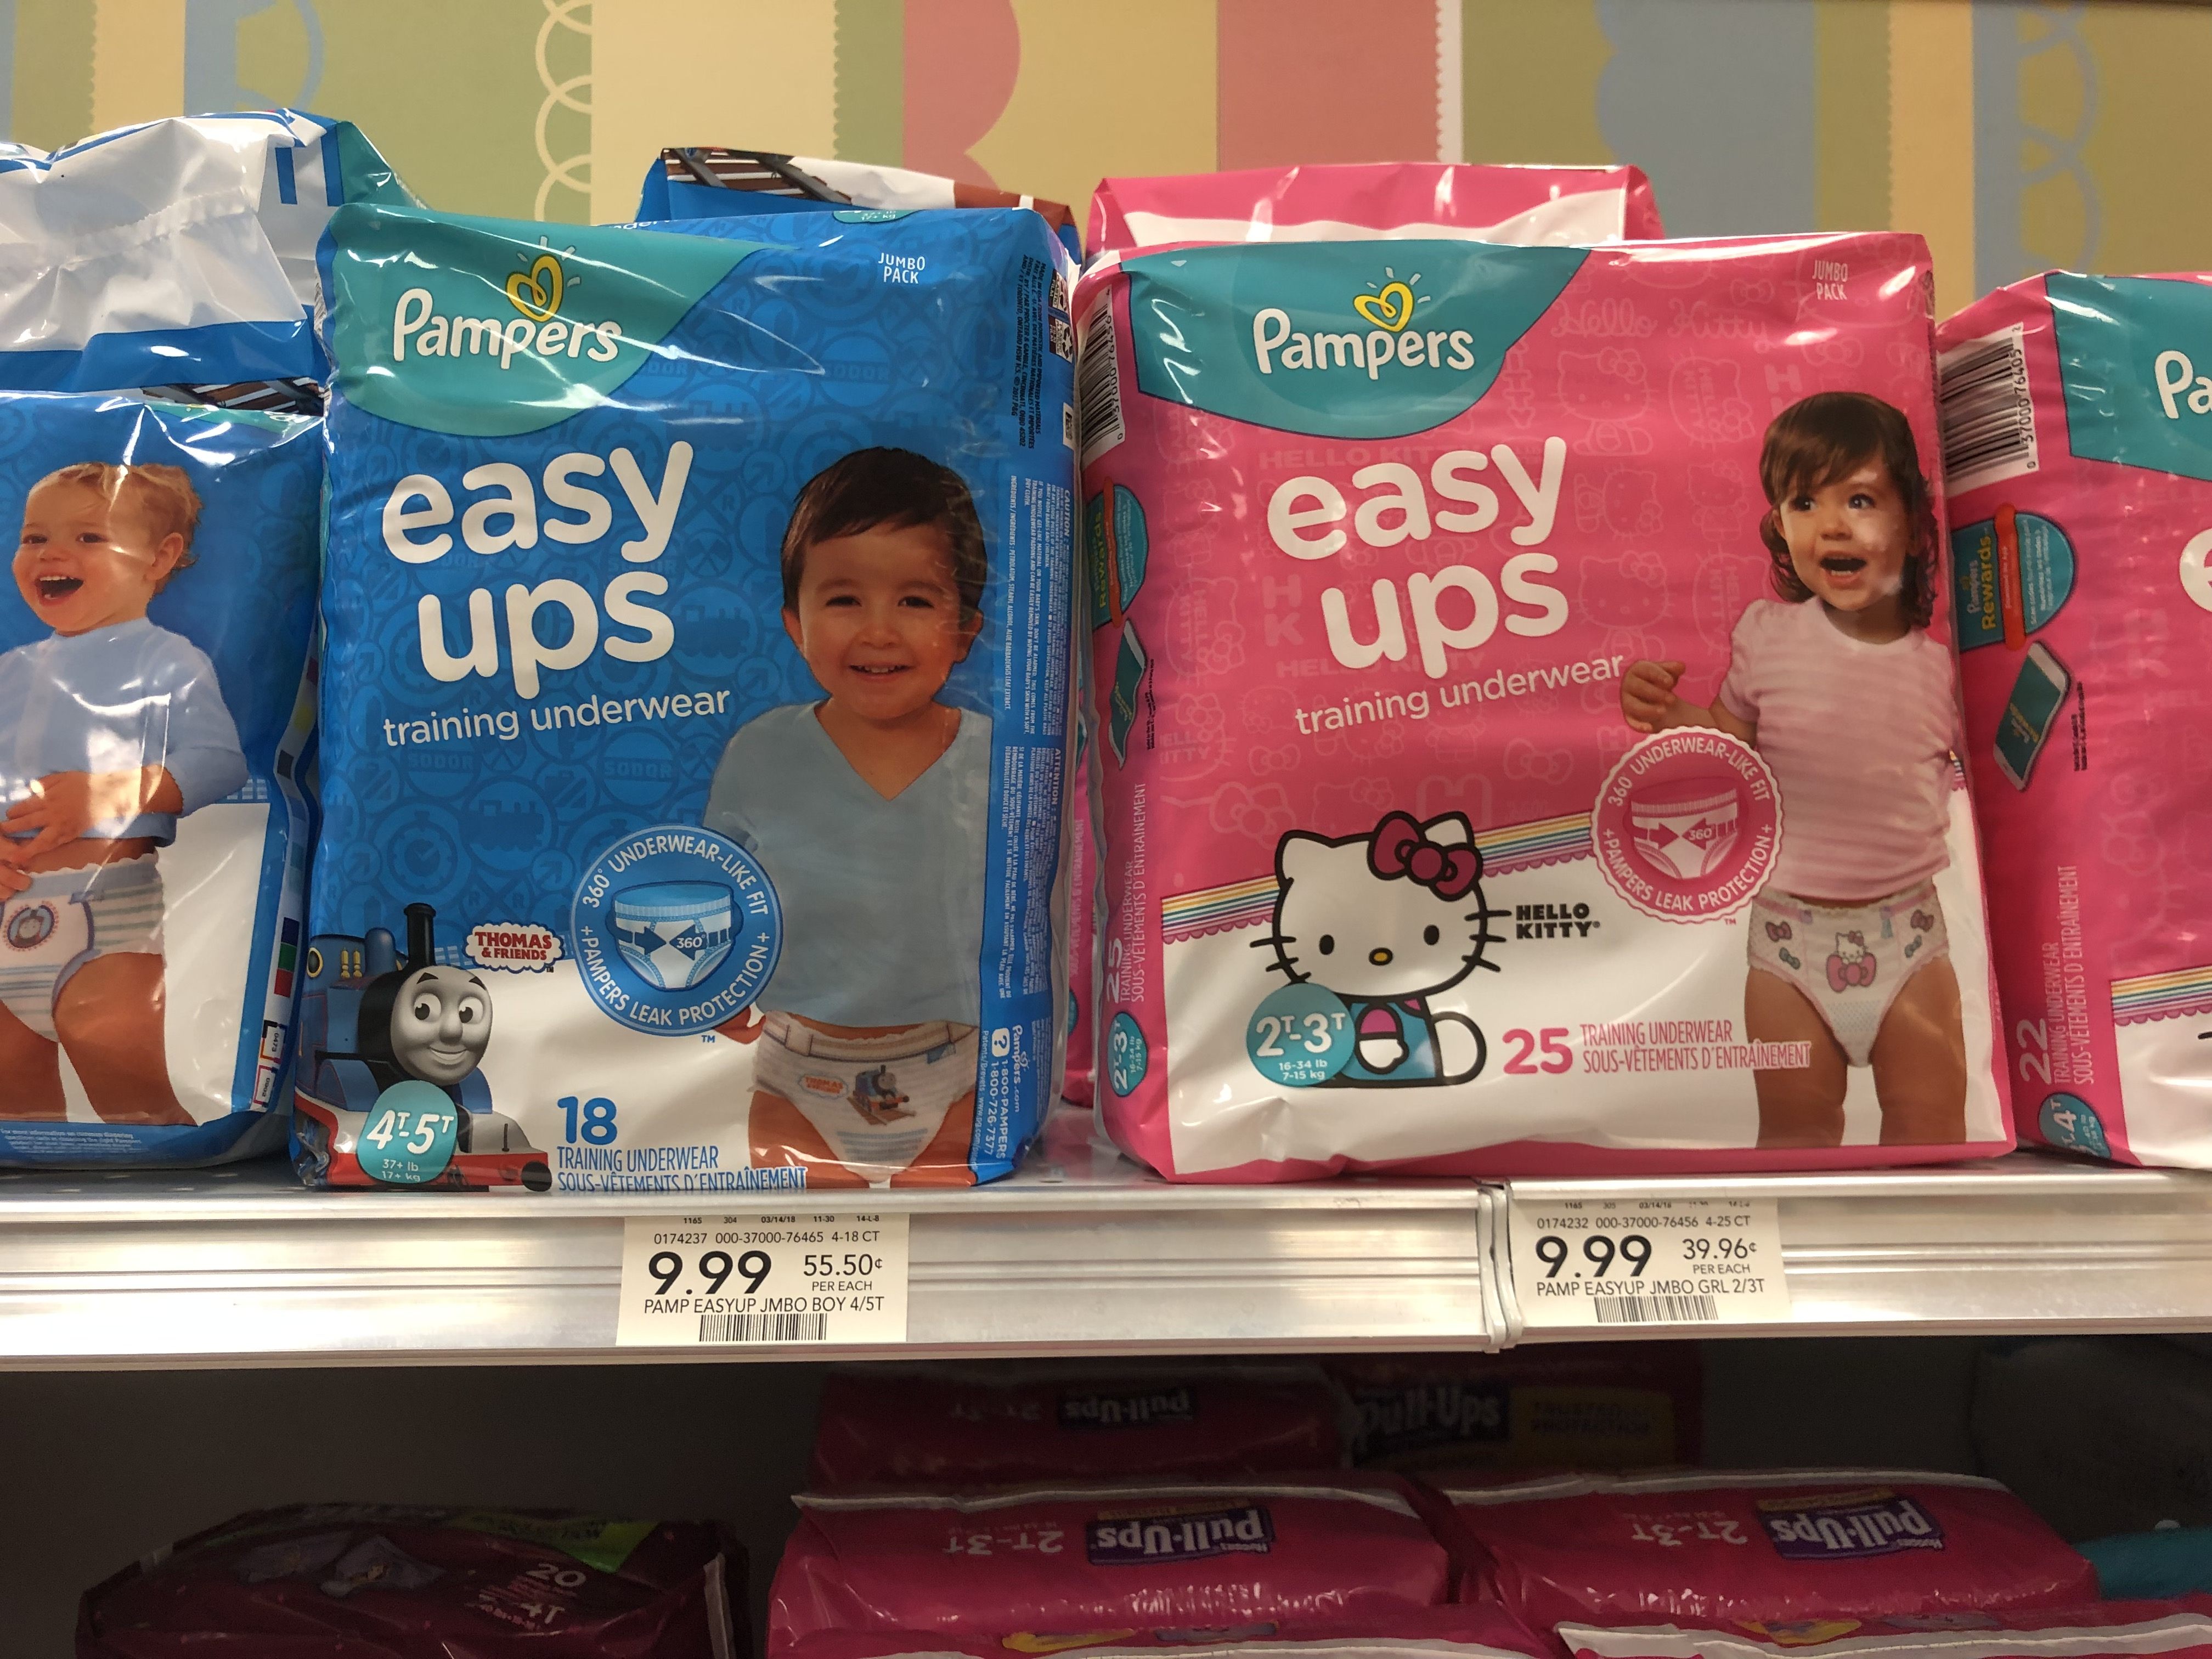 Pampers Easy Ups Training Underwear As Low As $2.99 At Publix